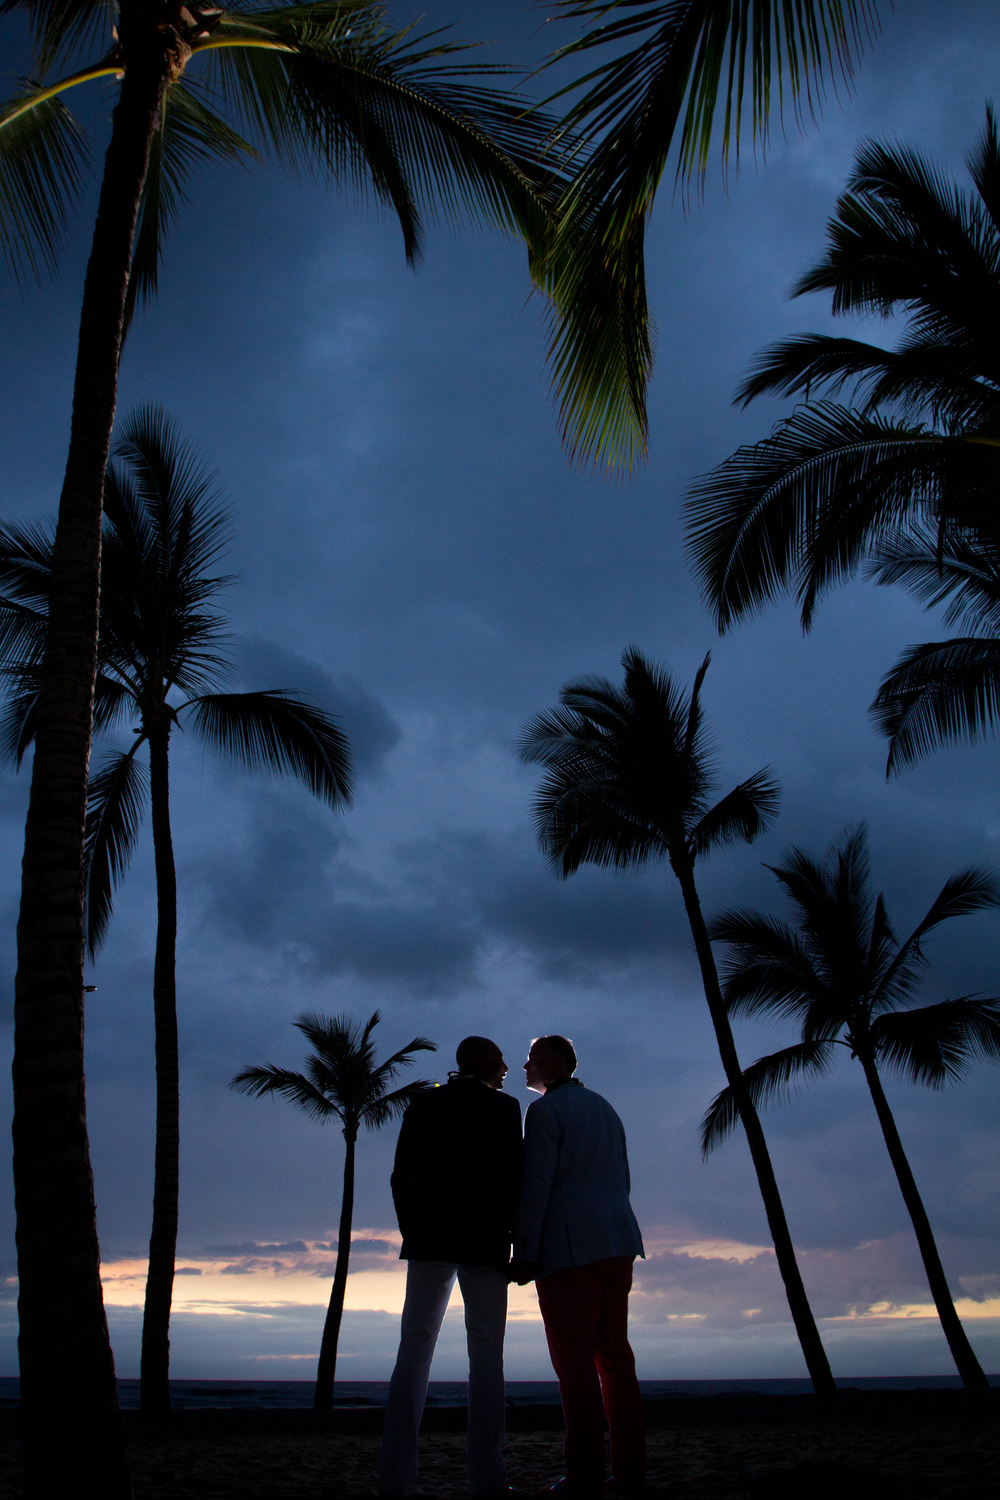 big island hawaii rmauna lani beach wedding © kelilina photography 20160601185552-3.jpg